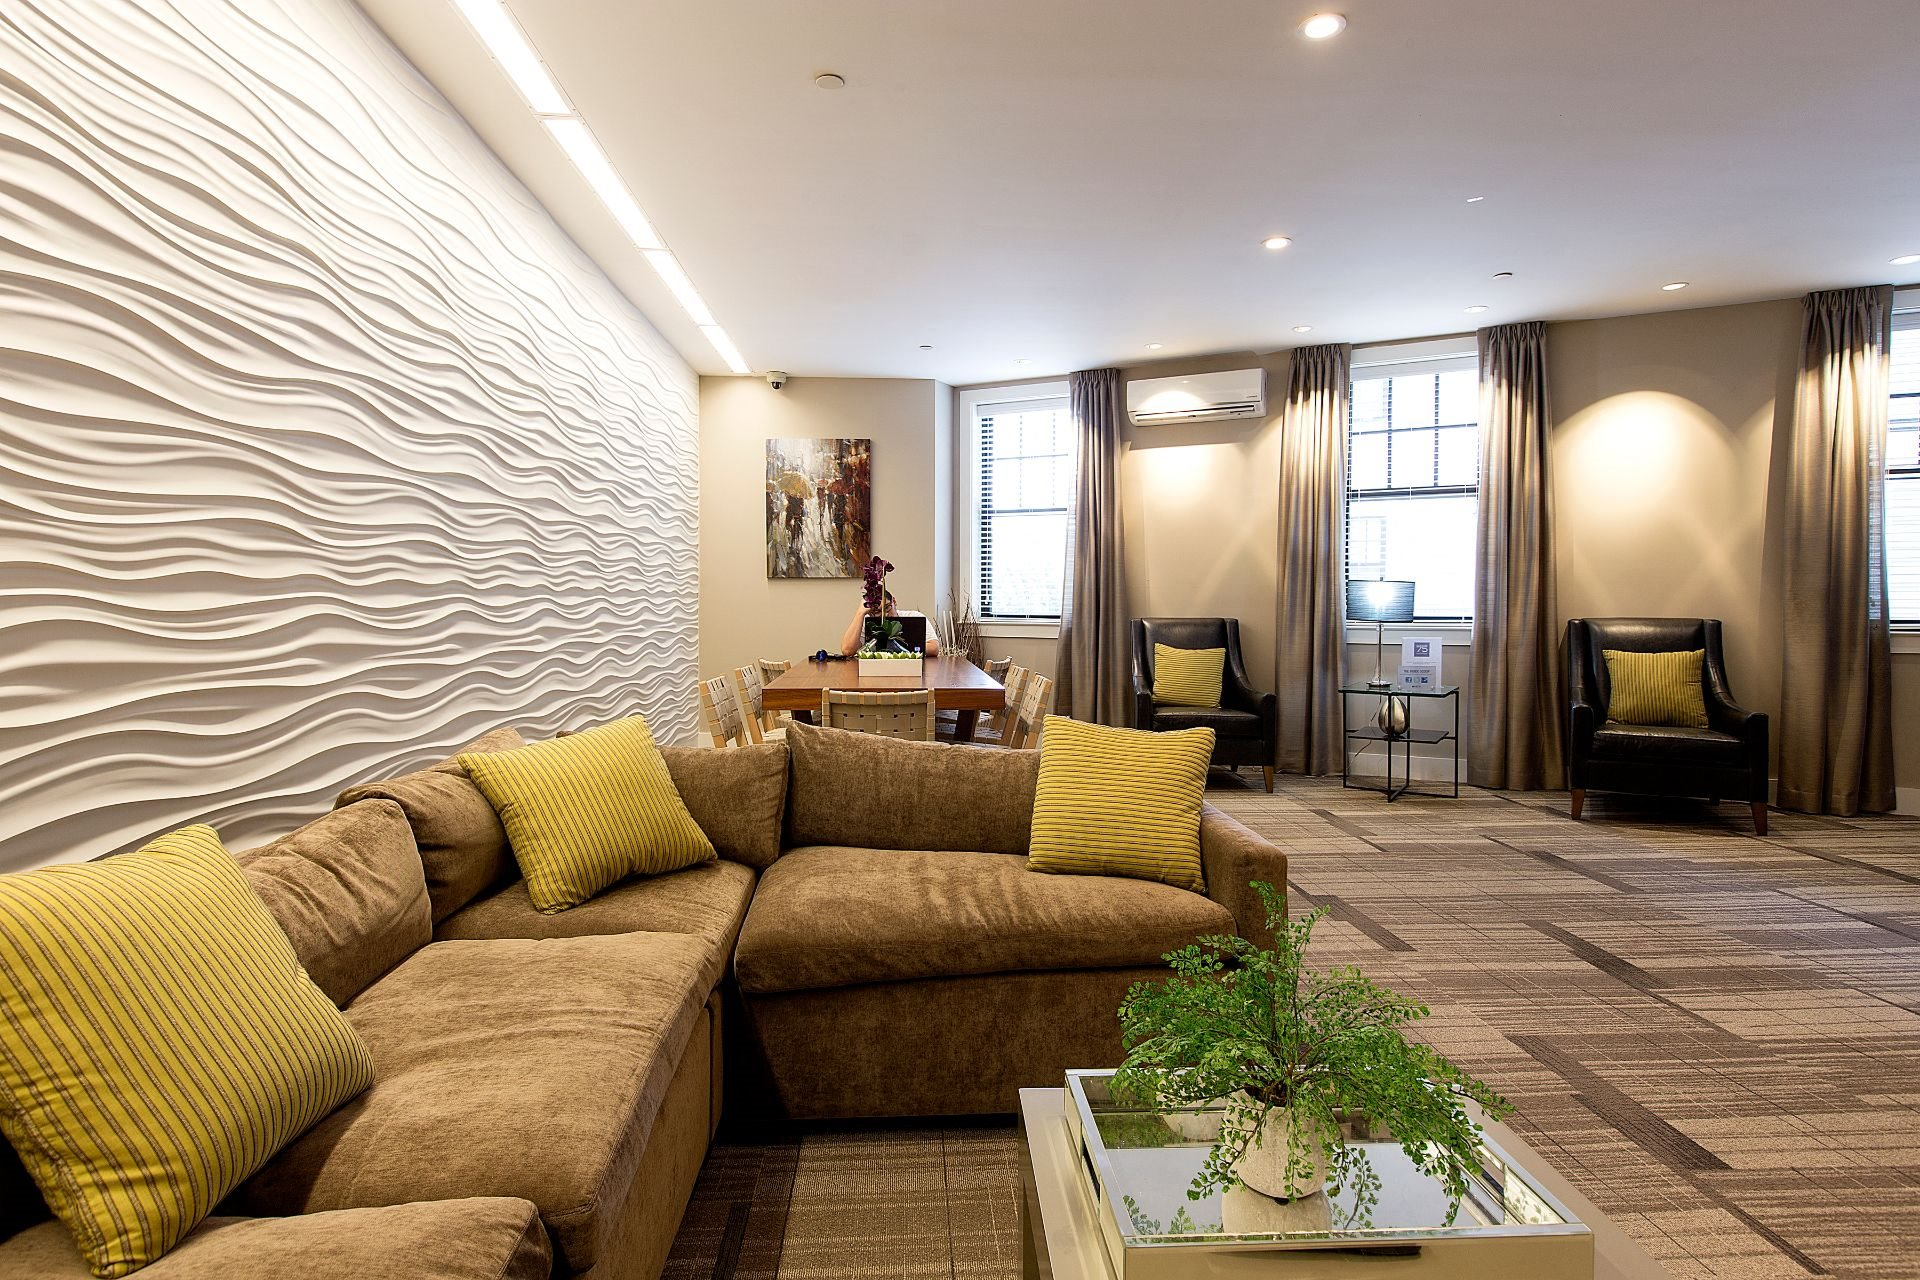 Beautifully Designed Resident Club Room and Lounge with Work-From-Home Spaces, Resident Lounge, Coffee Bar and Media Viewing Space at Gatehouse 75, Massachusetts